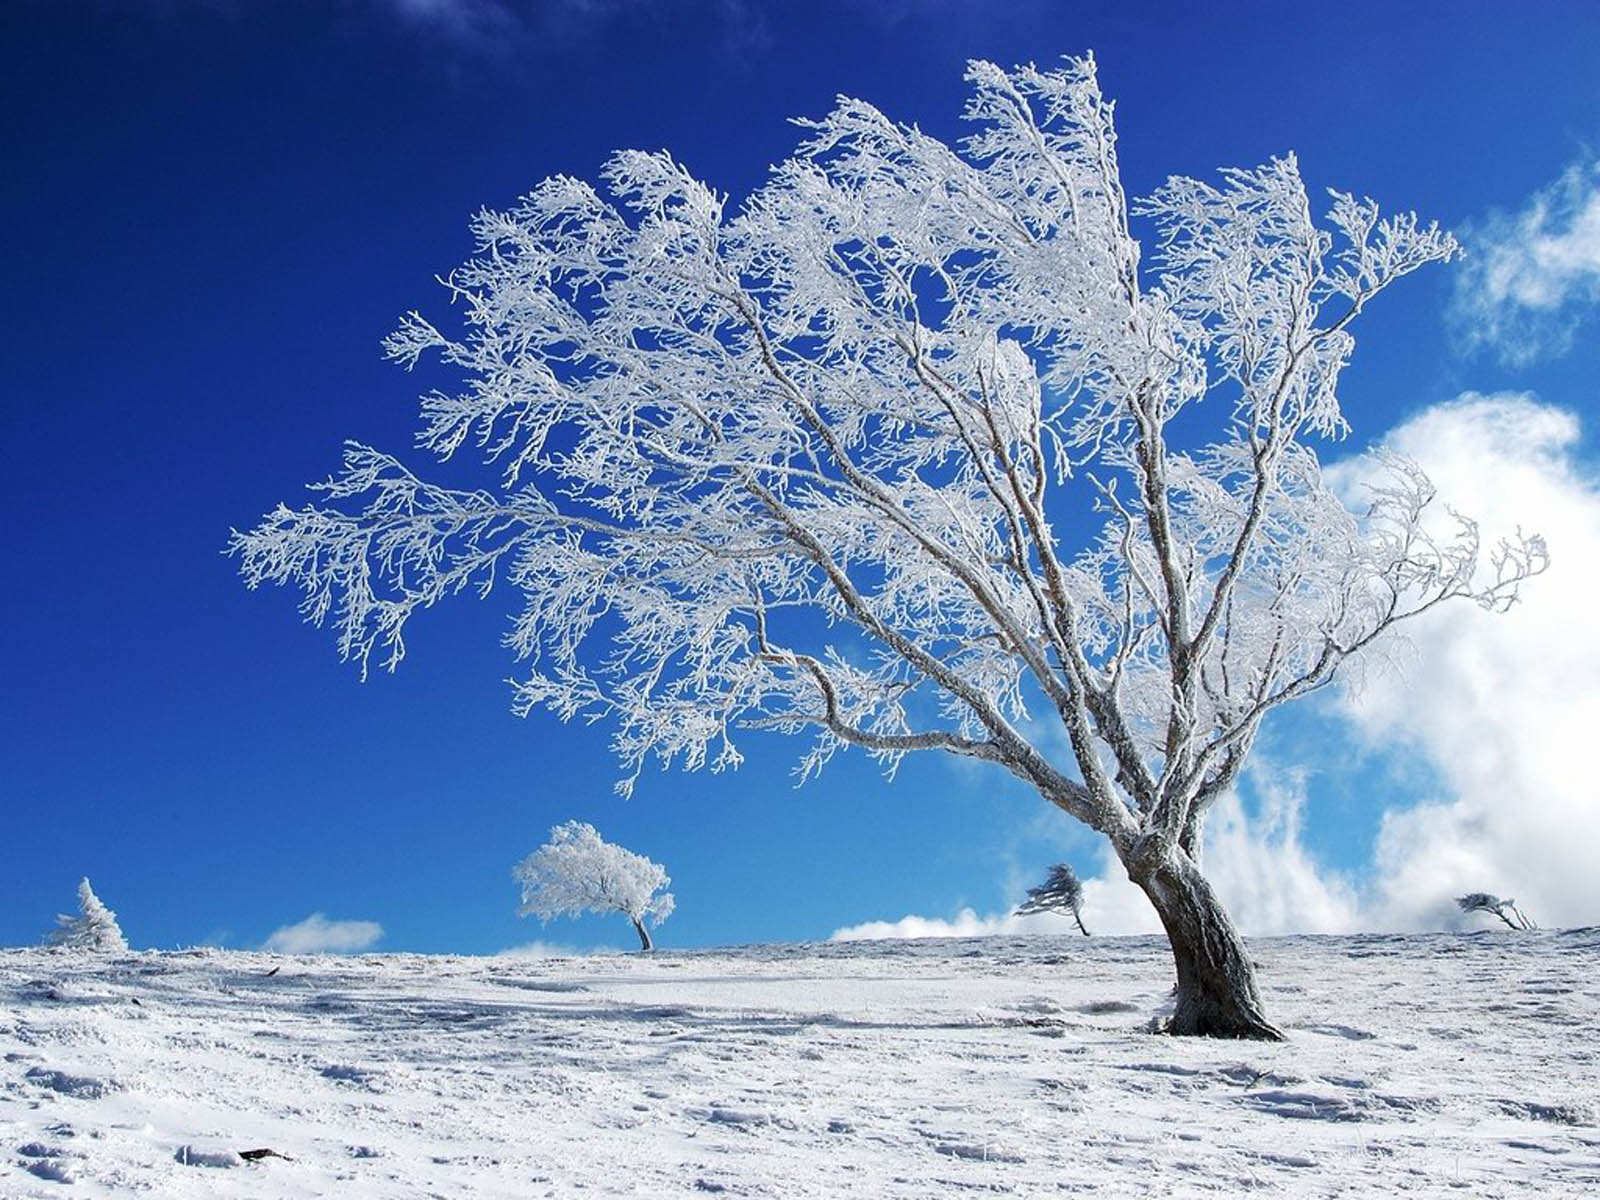 Winter Wallpaper Desktop tag winter desktop wallpapers backgrounds paos pictures and images for